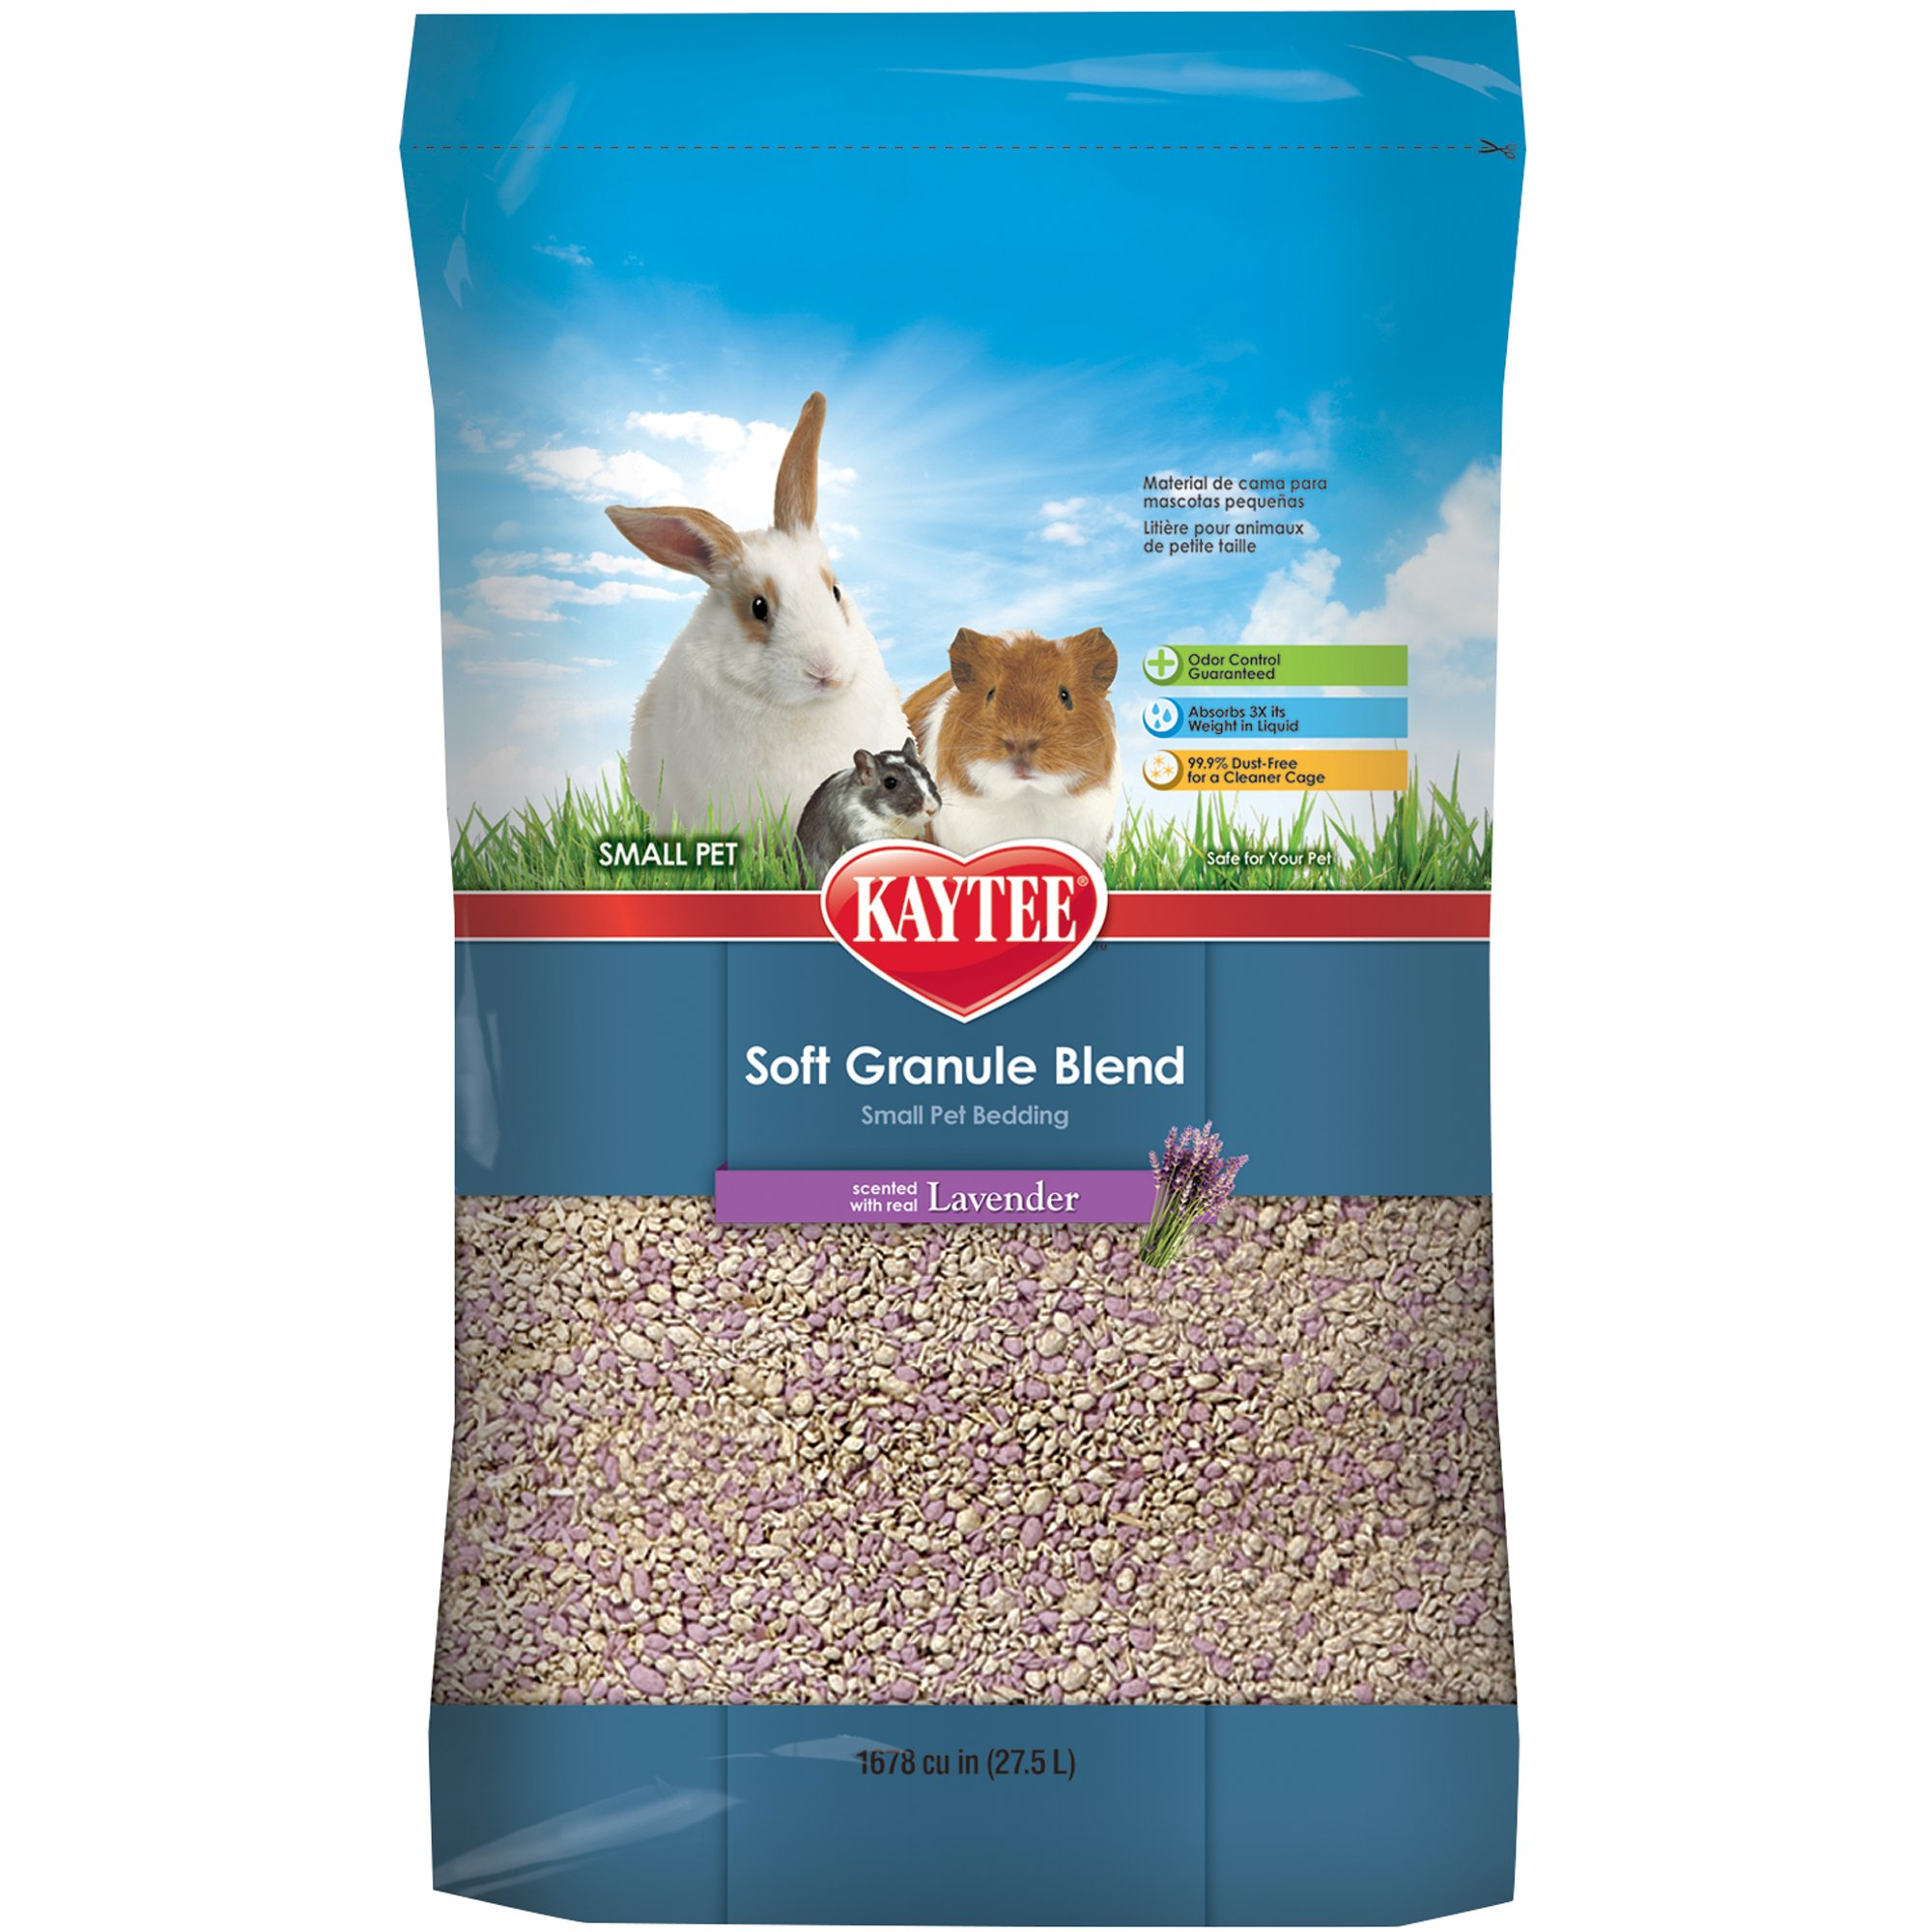 Kaytee Soft Granule Lavender 27 5 Liter 1678 Cu In Petco Small Animal Bedding Small Pet Bed Pet Beds